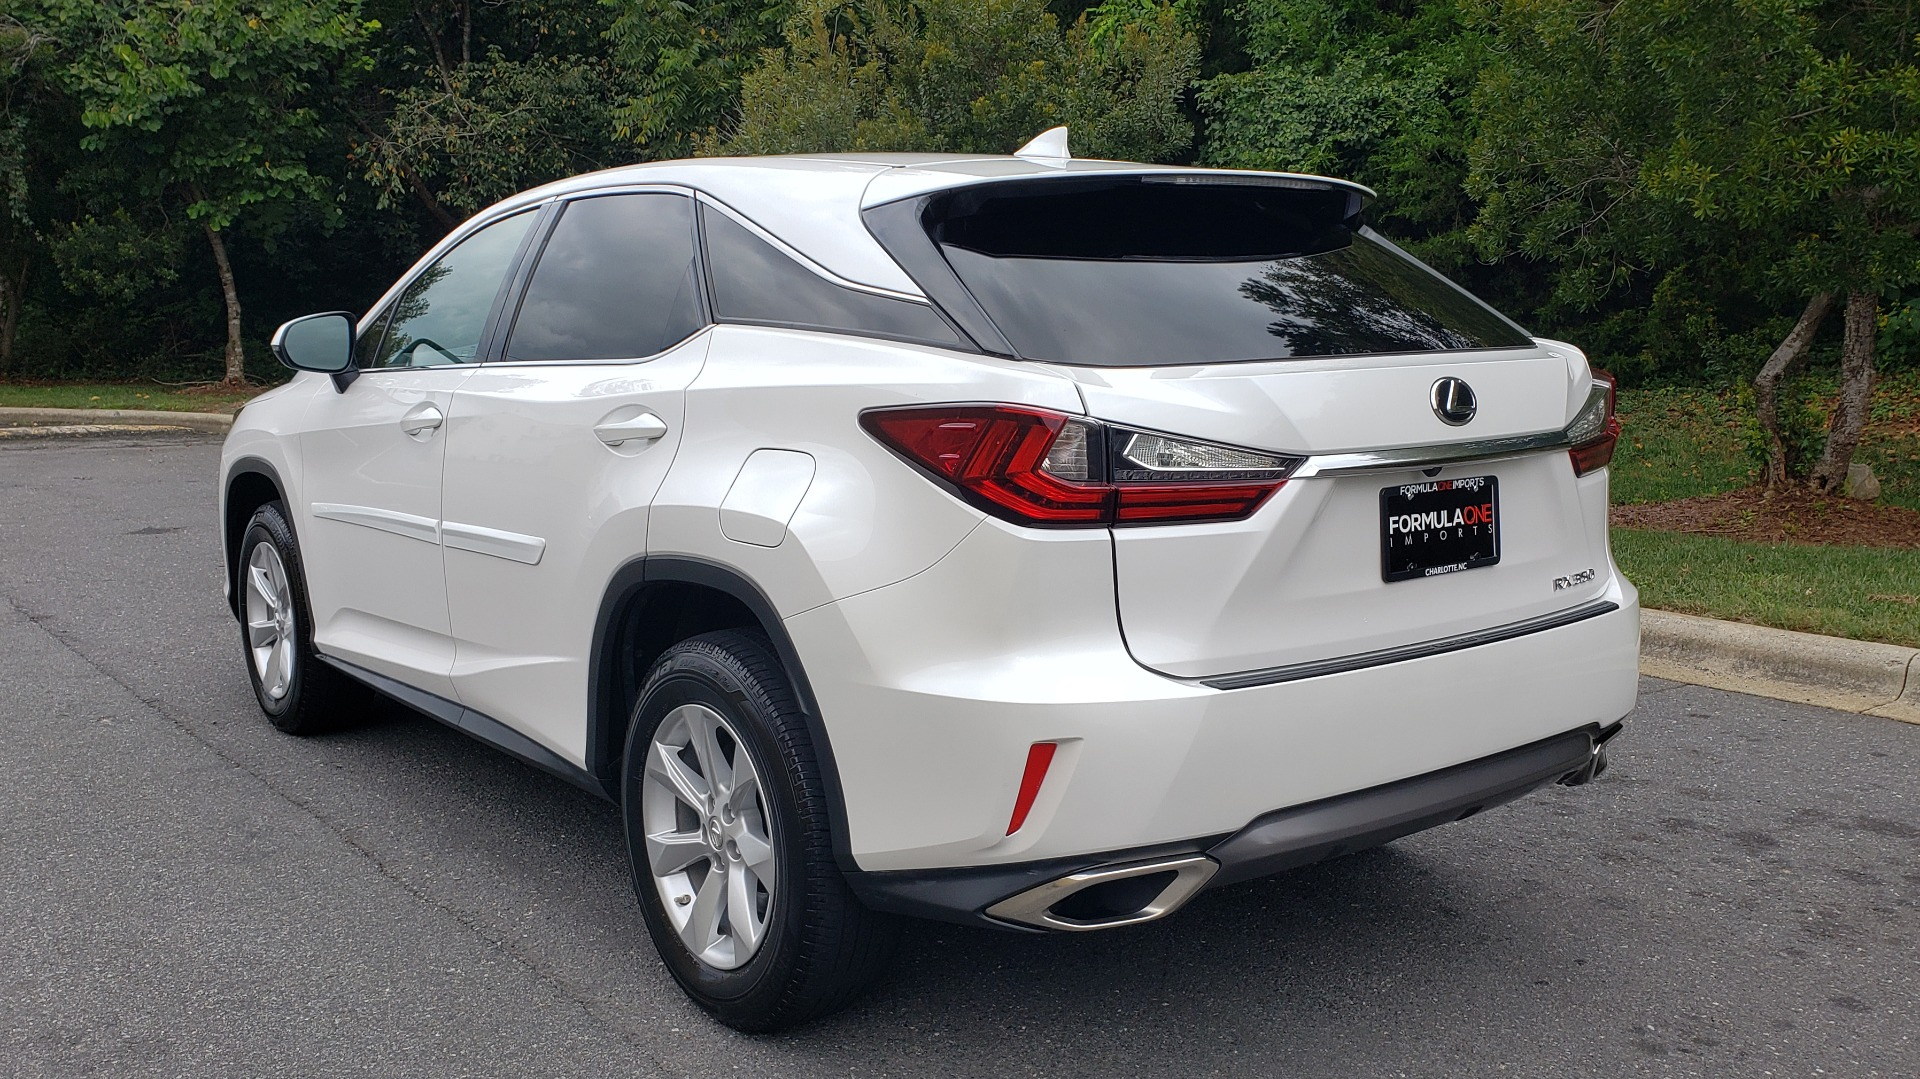 Used 2016 Lexus RX 350 FWD / 4-DR / 3.5L V6 / 8-SPD AUTO / LEATHER / REARVIEW for sale Sold at Formula Imports in Charlotte NC 28227 6